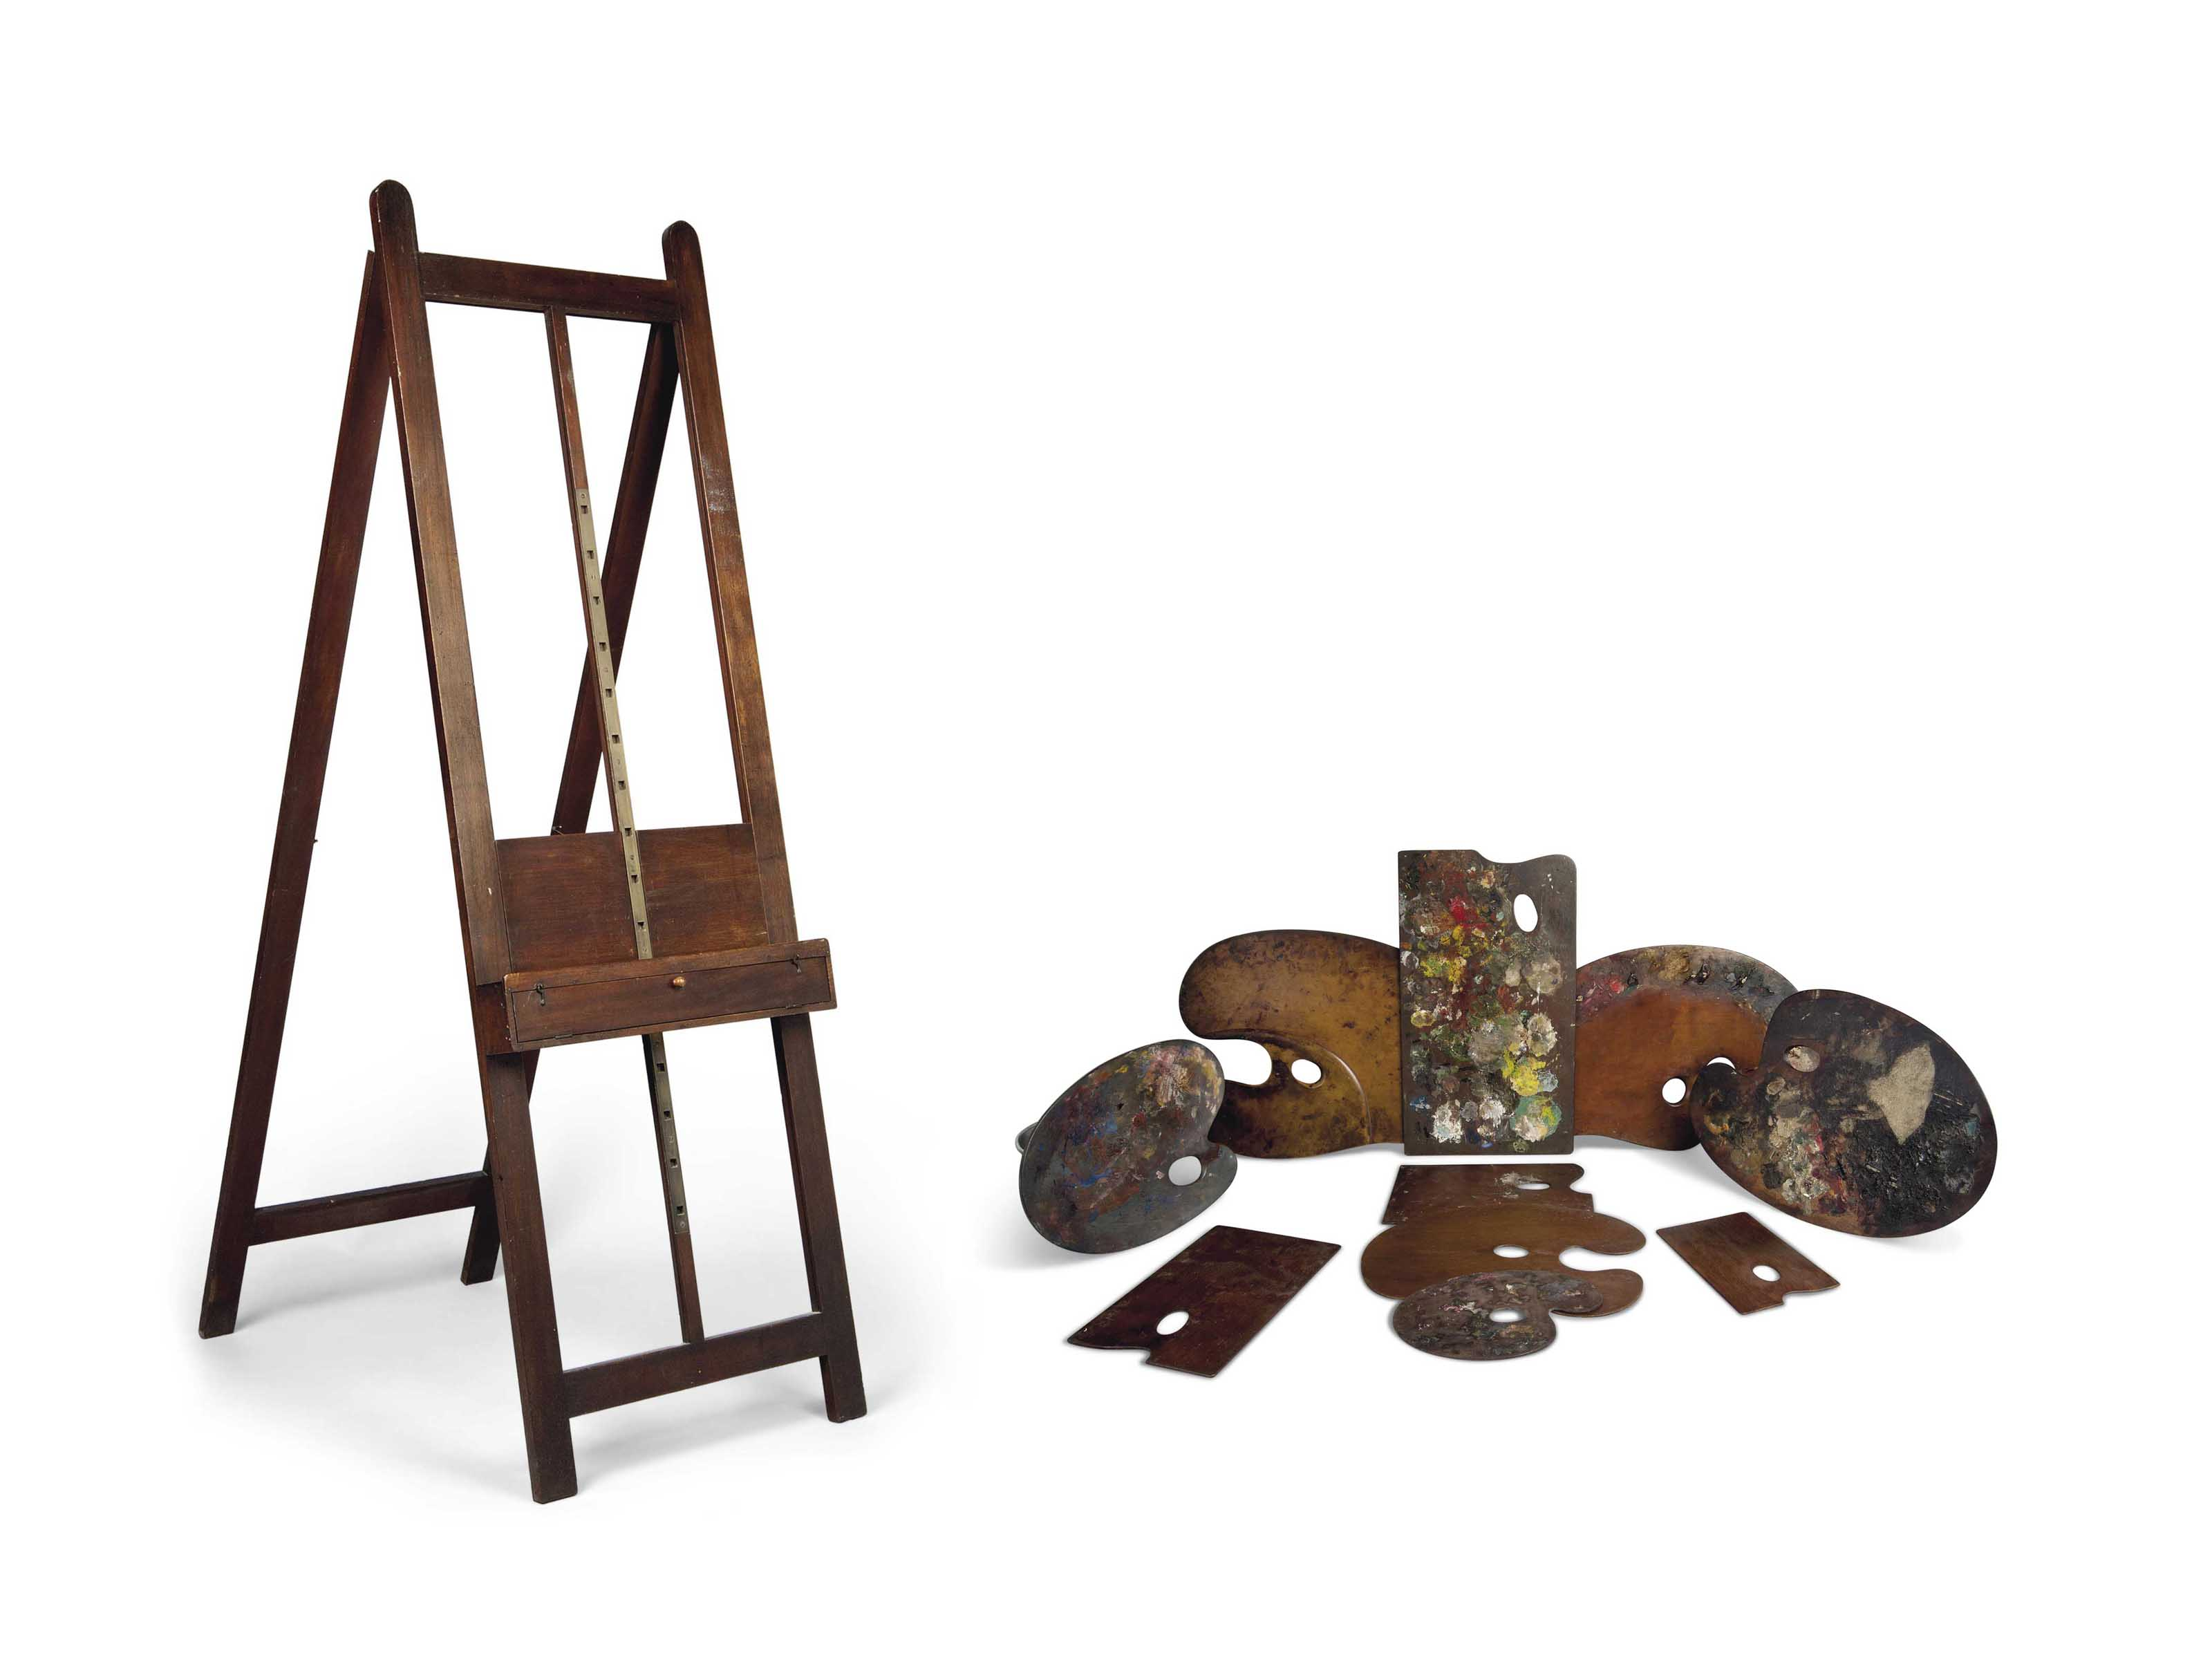 A MAHOGANY ARTISTS' EASEL AND